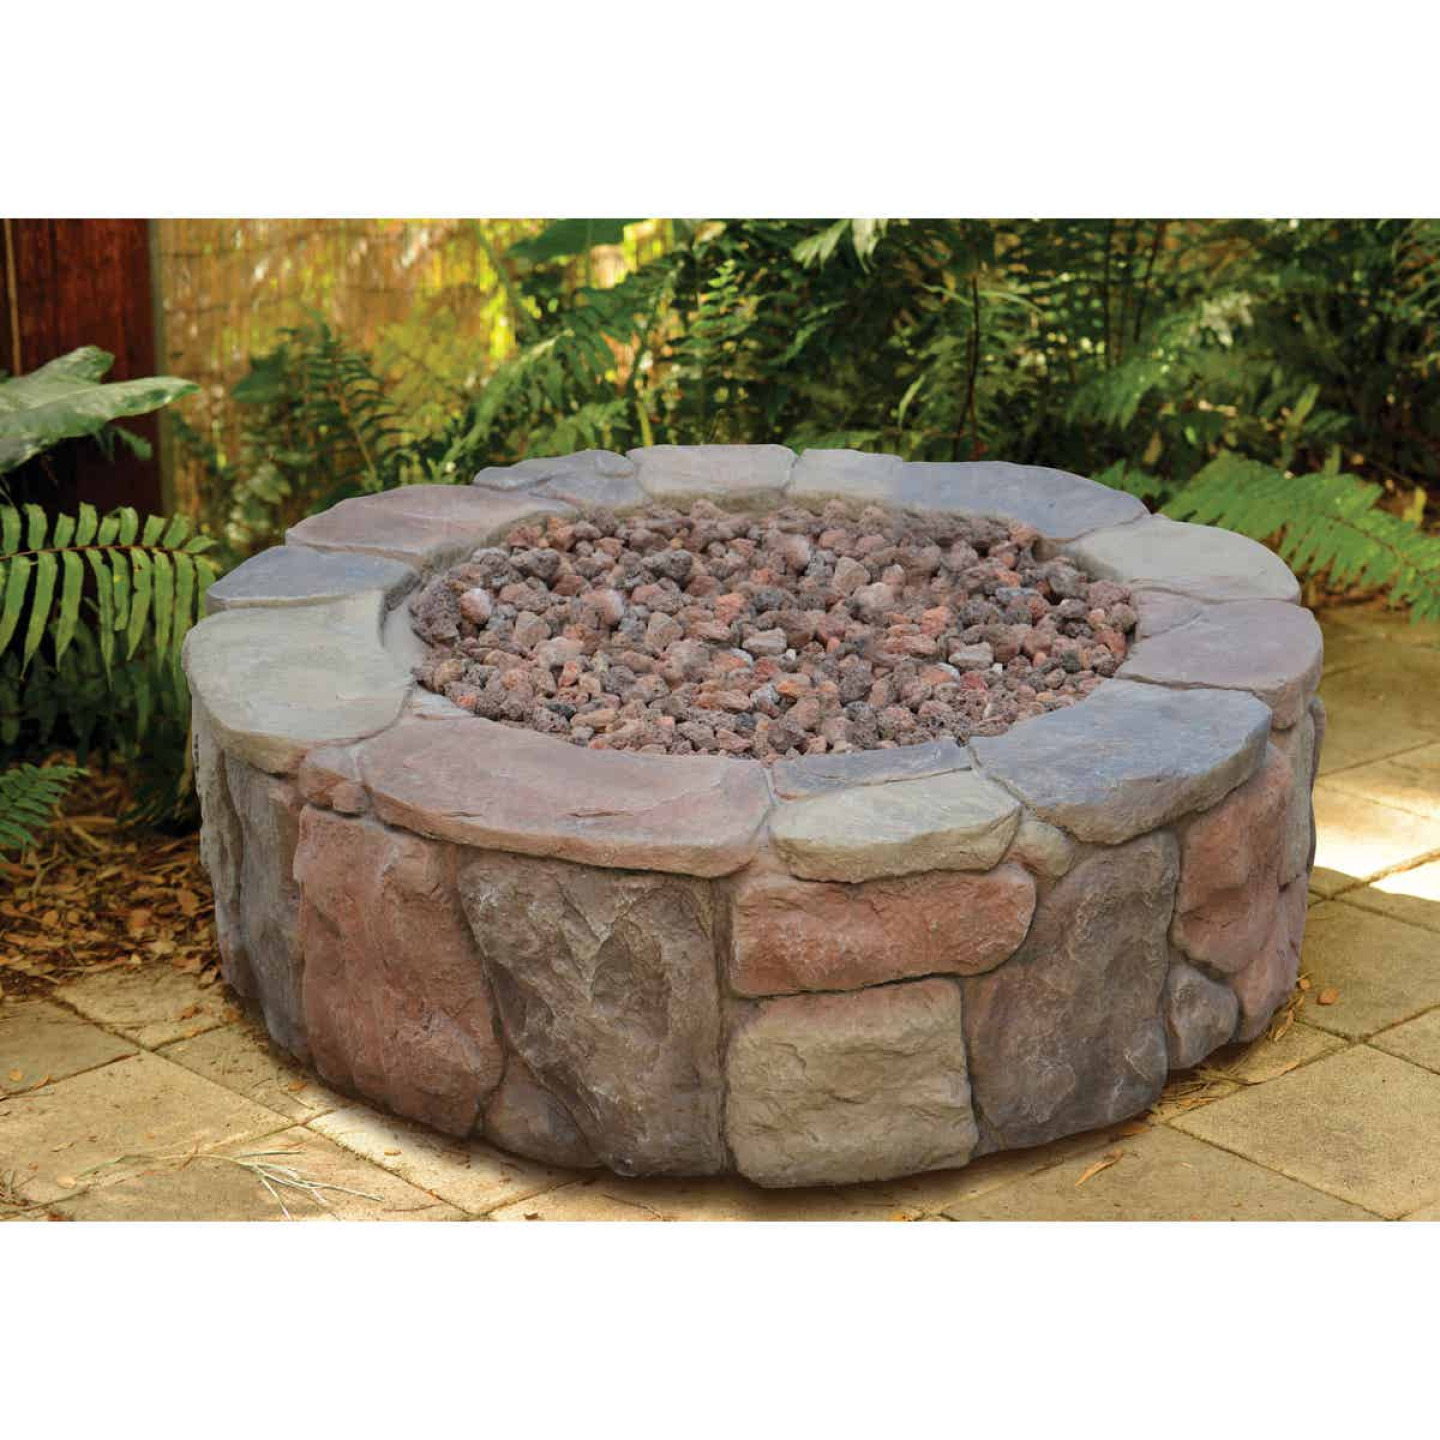 Bond Petra 36 In. Round Faux Stone Fire Pit Image 2